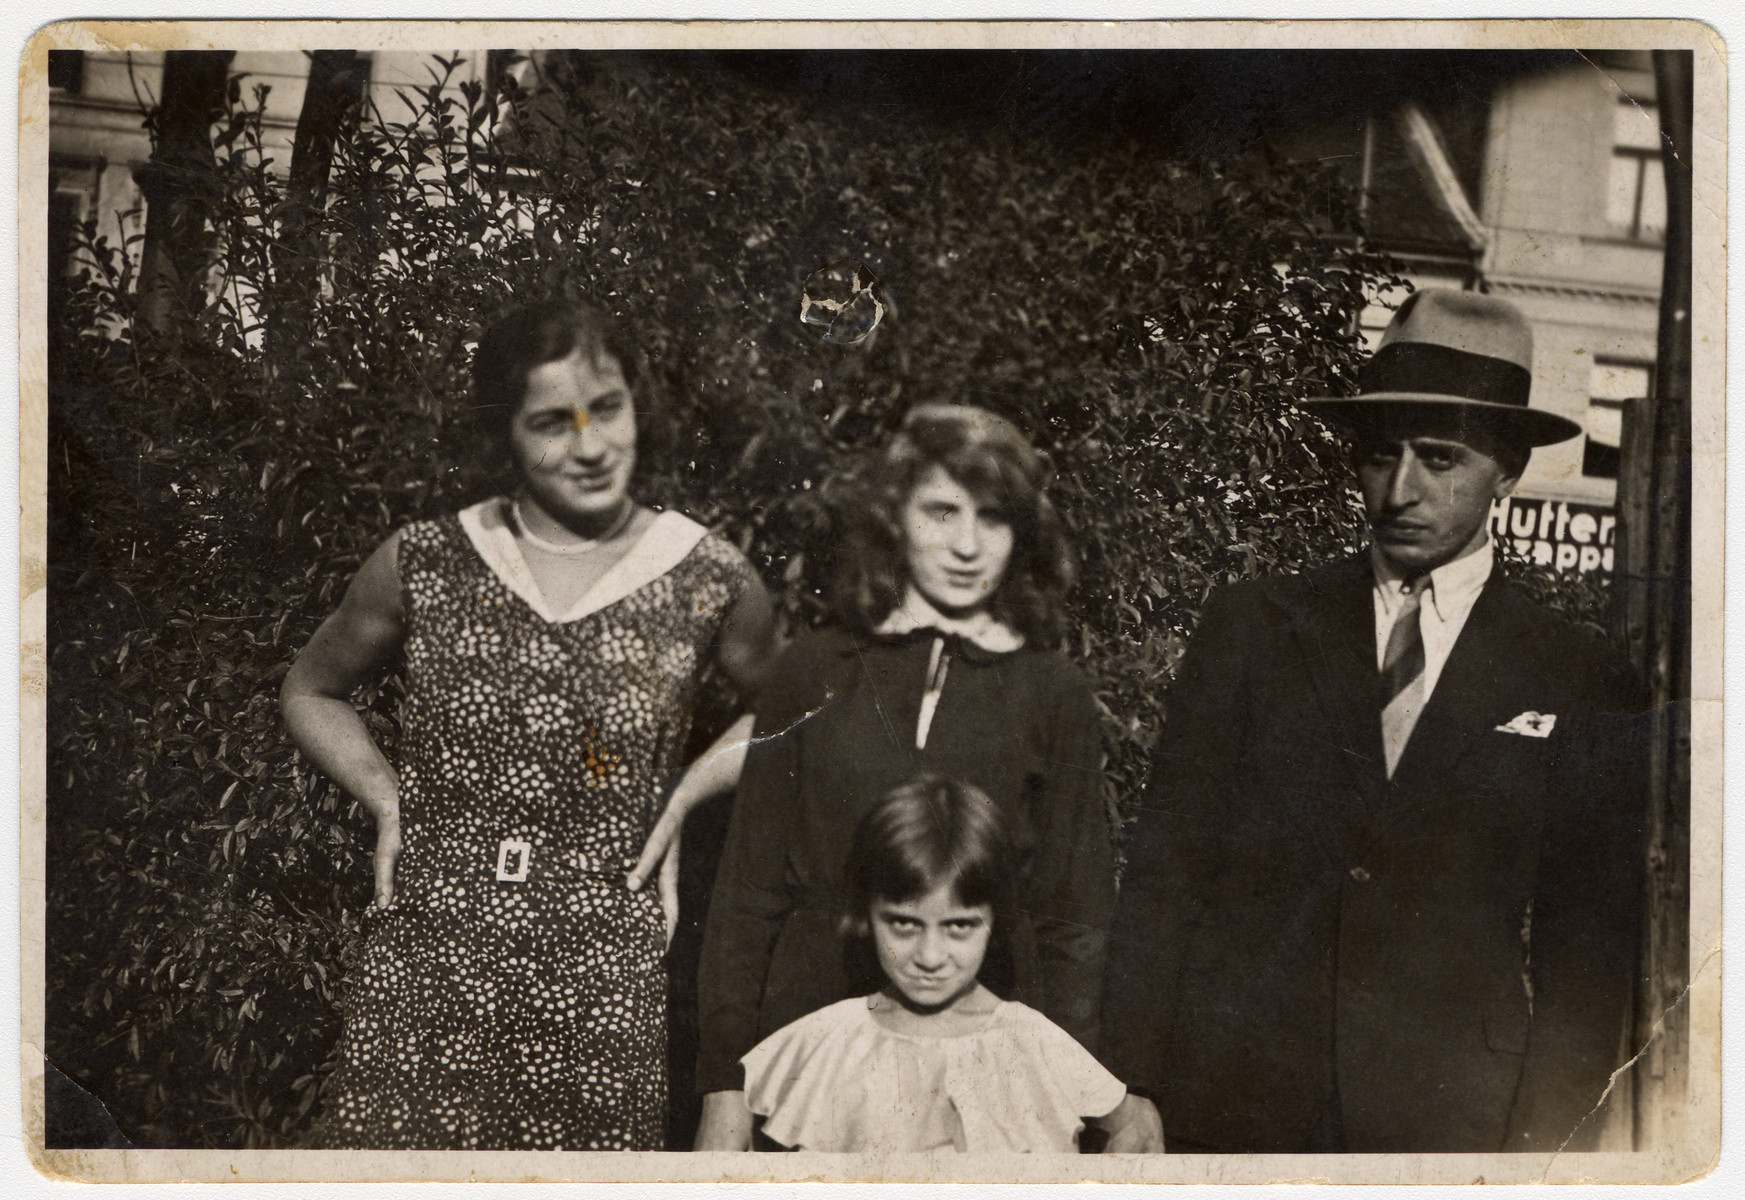 A family poses outside on a city street in Budapest.  Pictured are Anges Biel's mother's (Katalin) family. From left to right are siblings Gizi, Teri, and Jeno. The little girl on the bottom row is Ibolya.